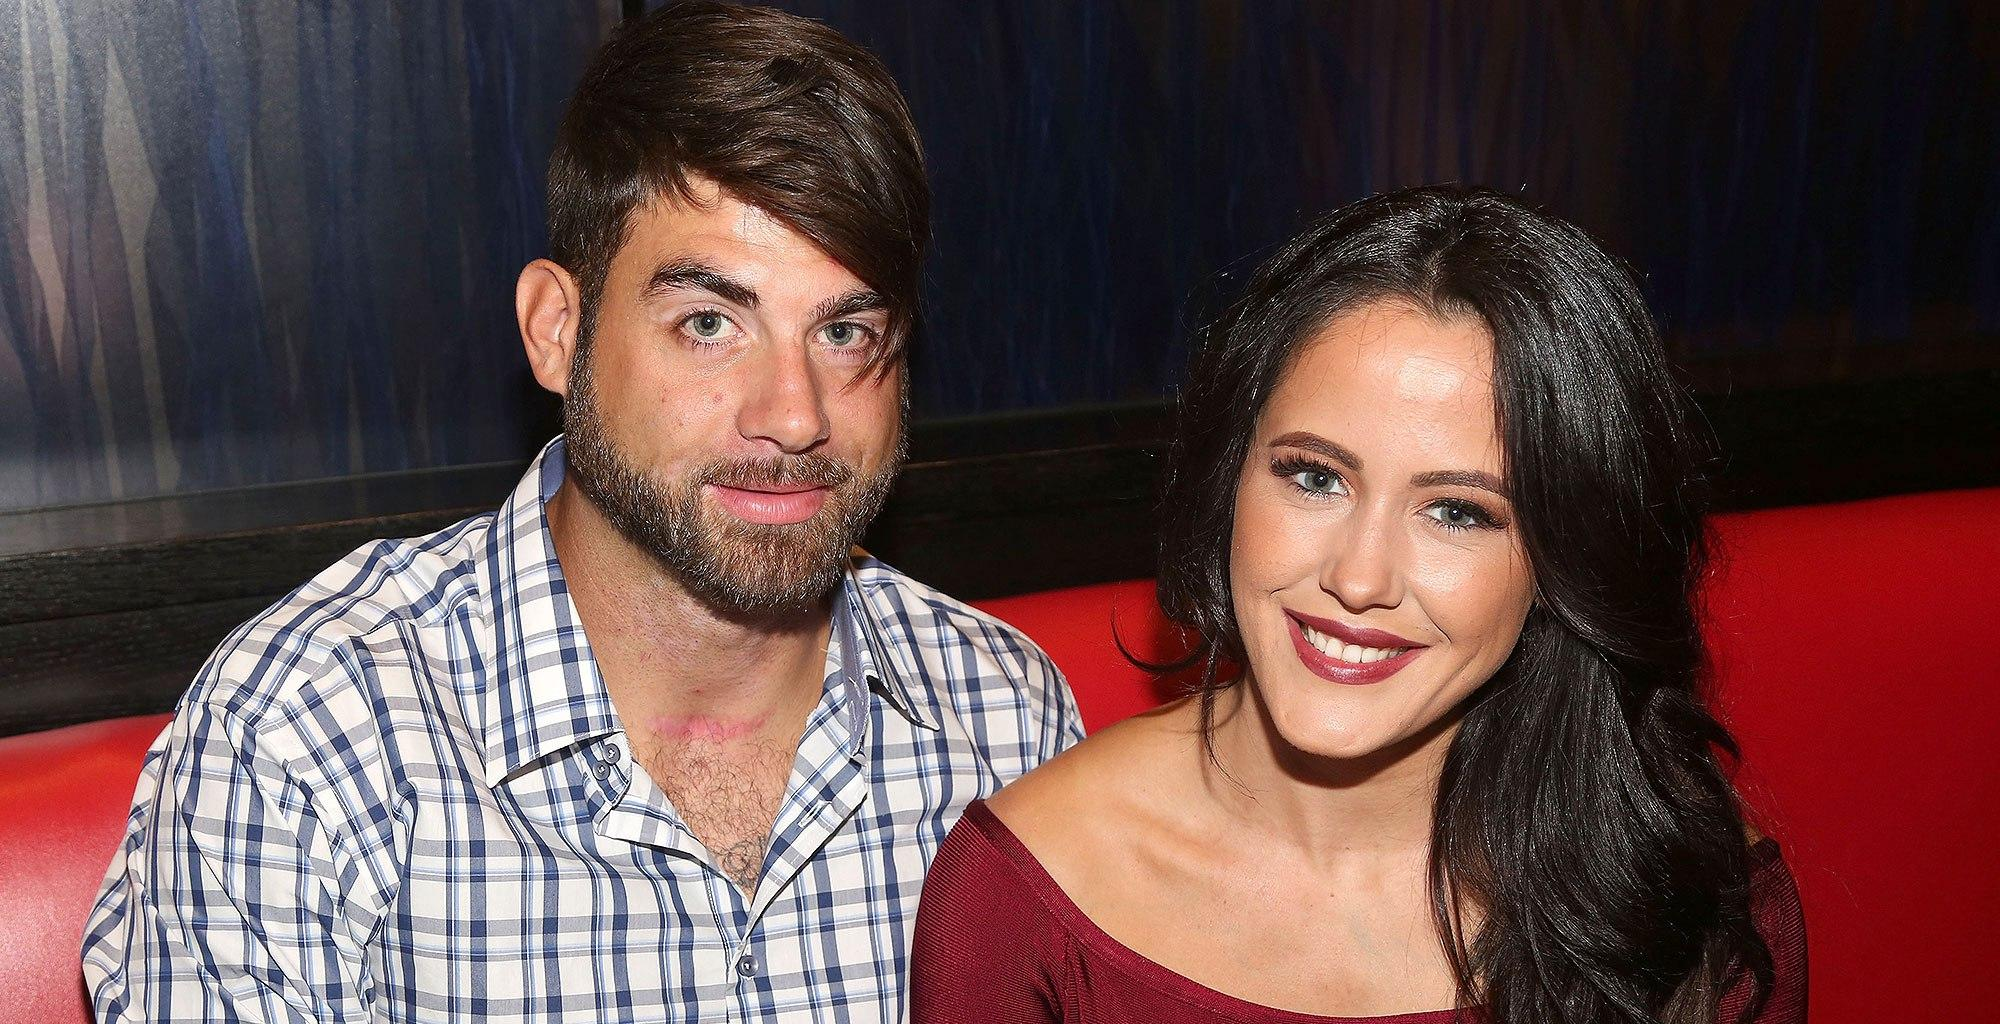 Jenelle Evans Says She And David Eason Are Closer After He Killed Her Dog - Explains Why She Stayed With Him